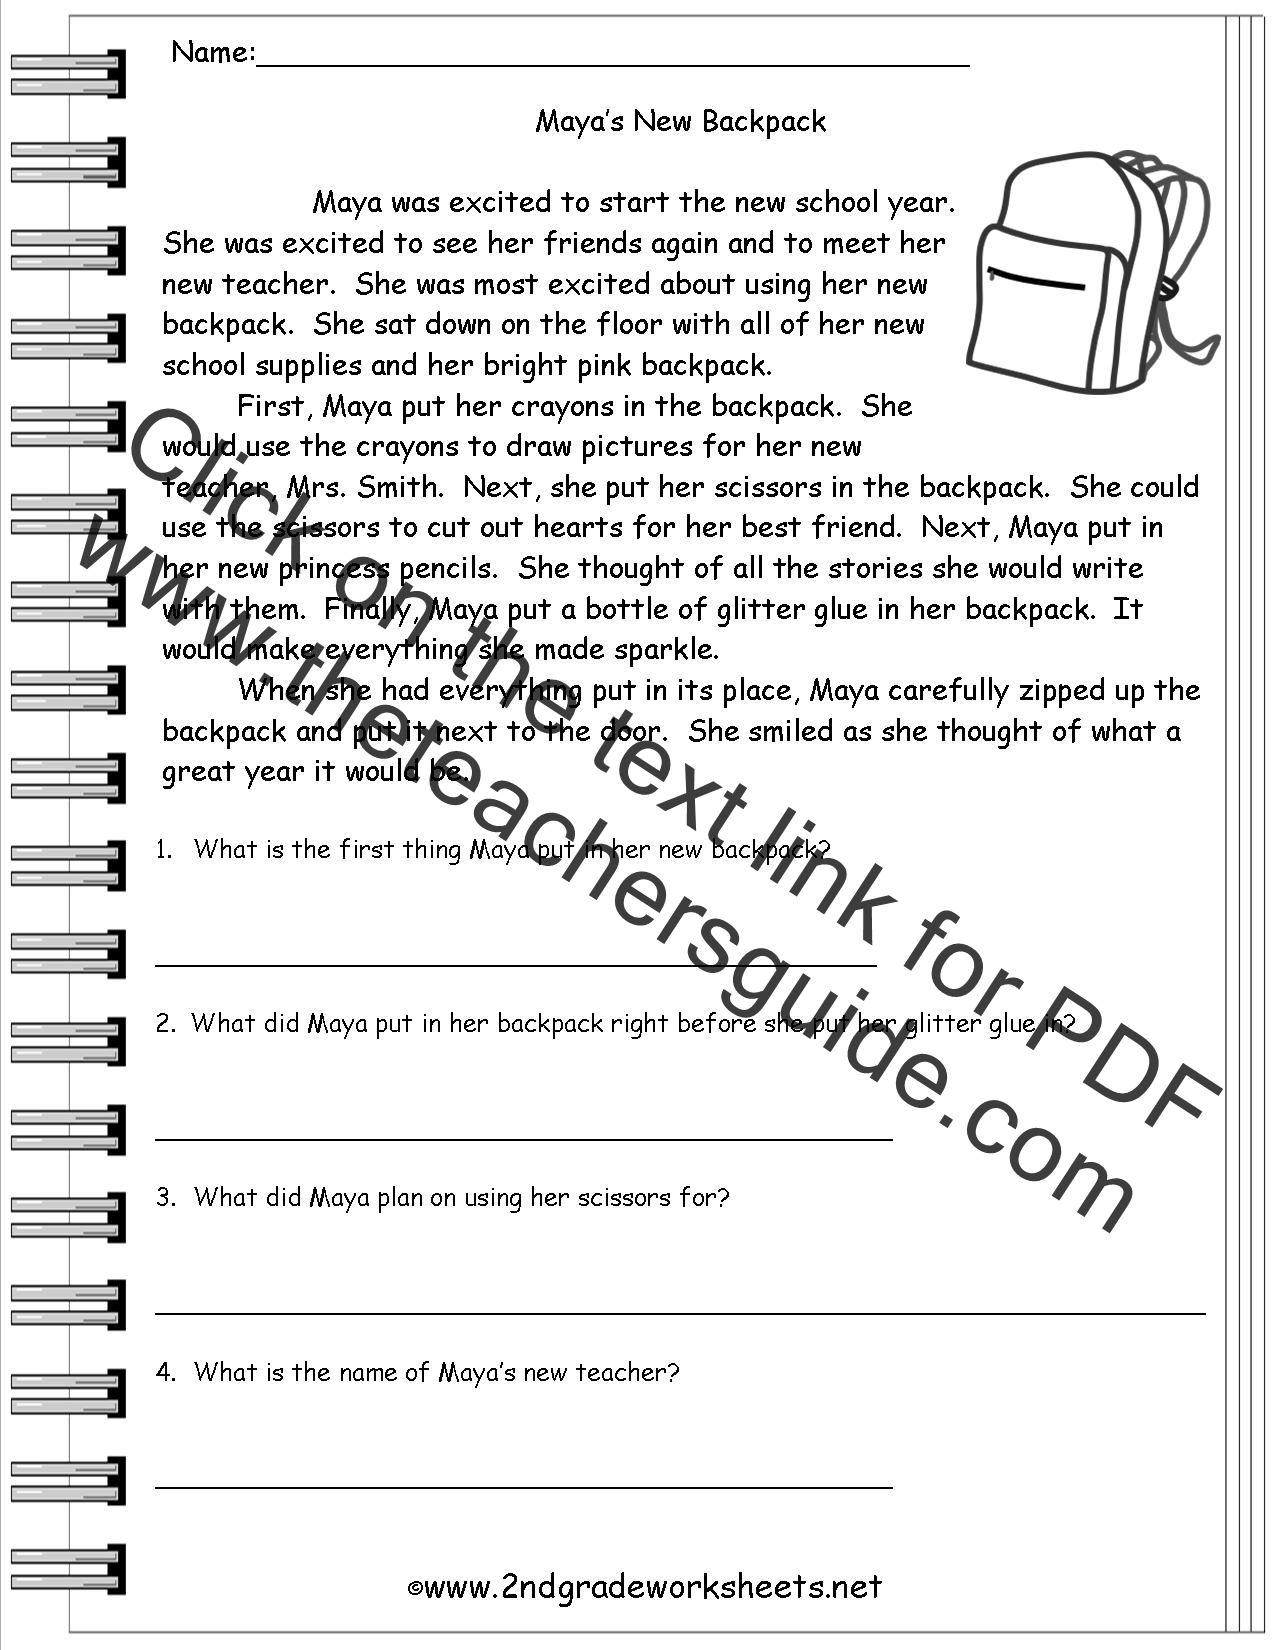 Worksheet Grade 4 Comprehension Passages With Questions reading worksheeets literature worksheets